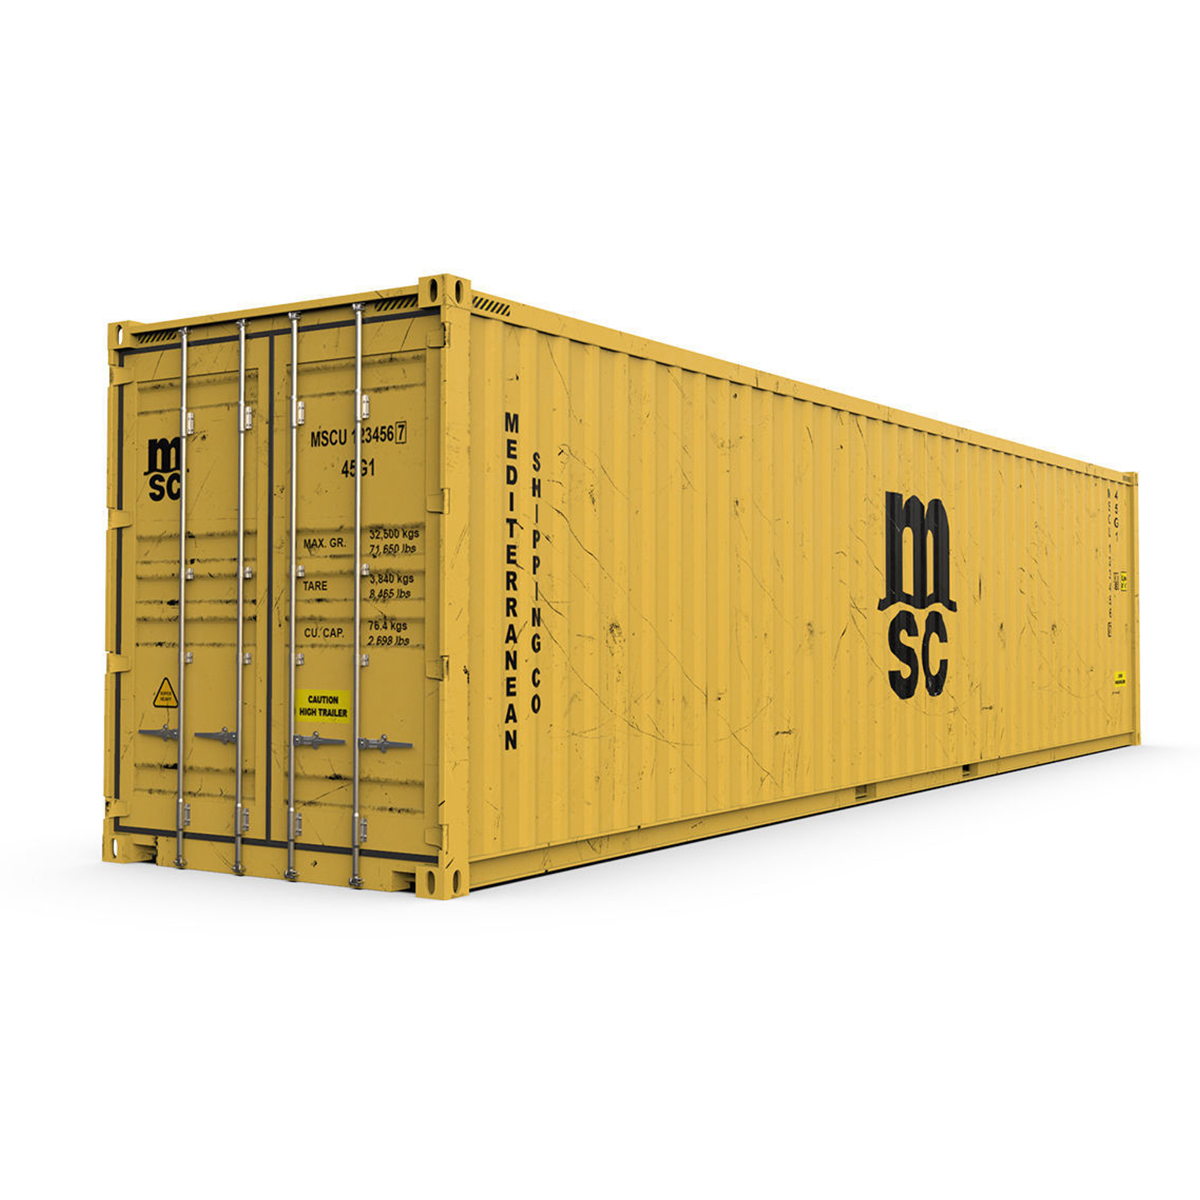 40 feet high cube msc shipping container 3d model 3ds max fbx ma mb obj 278397